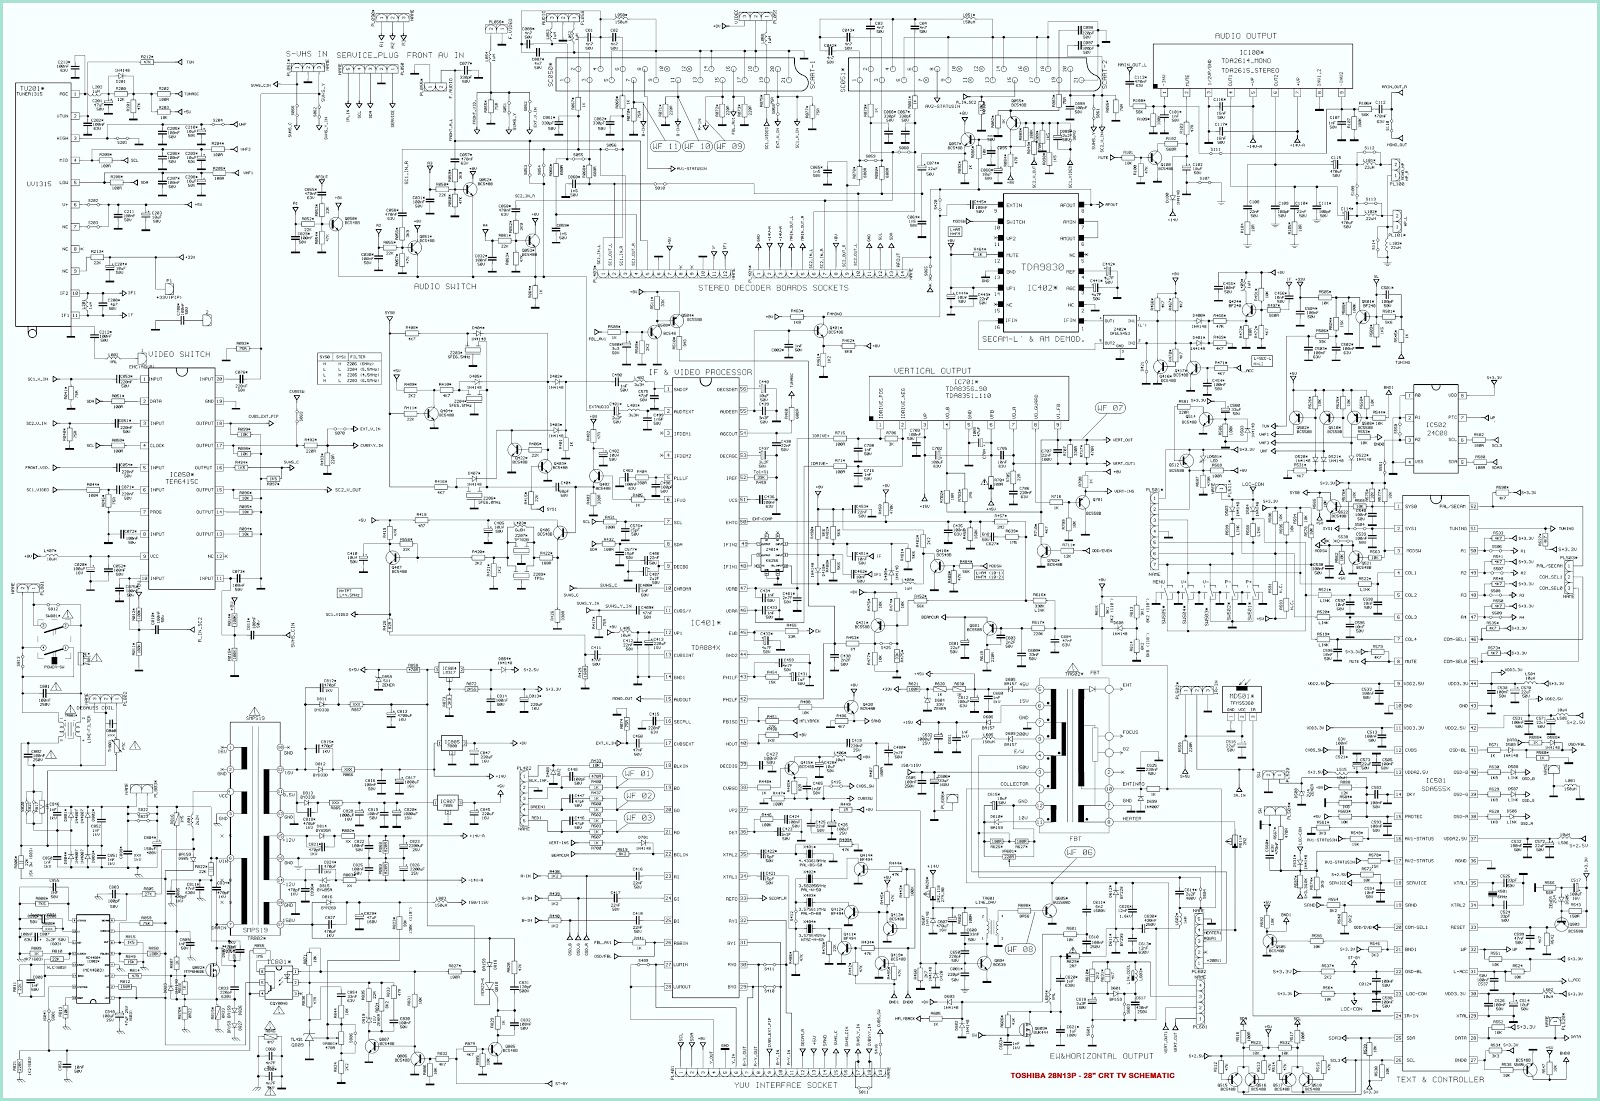 small resolution of toshiba tv circuit diagram wiring diagram expert toshiba tv circuit diagram